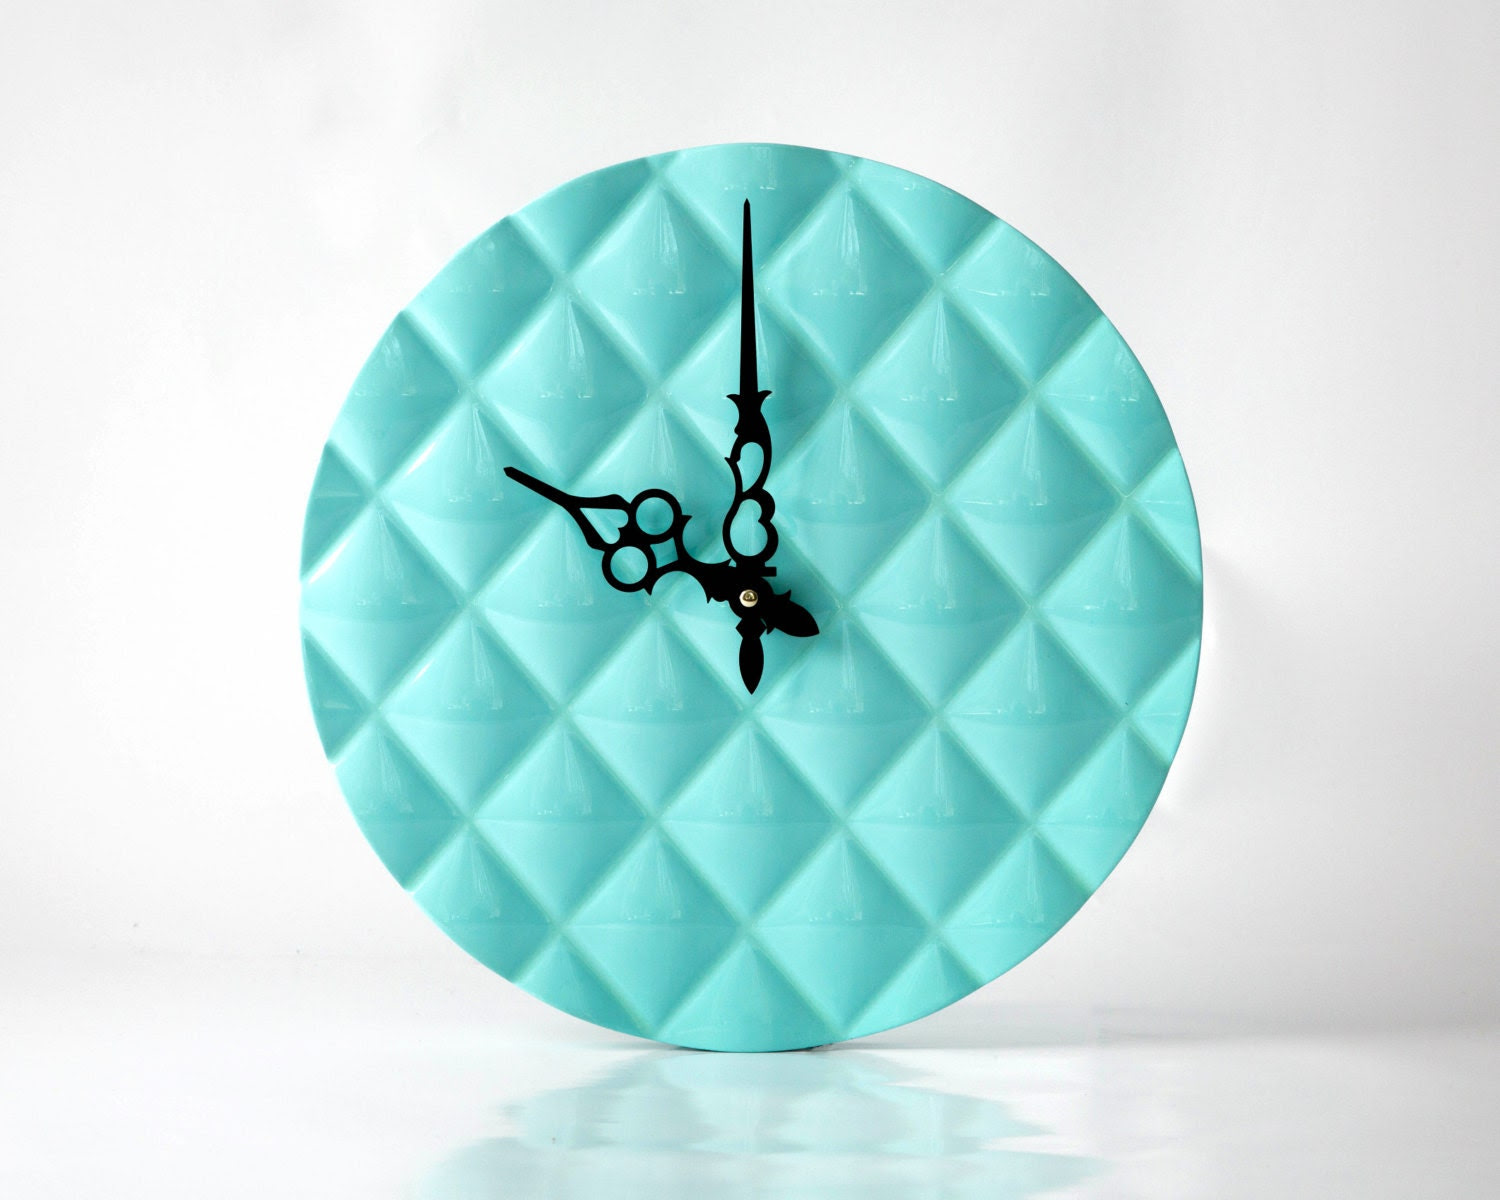 Wall clock made Glossy Turquoise Light , diamond 3d pattern cut, shiny - DesignAtelierArticle